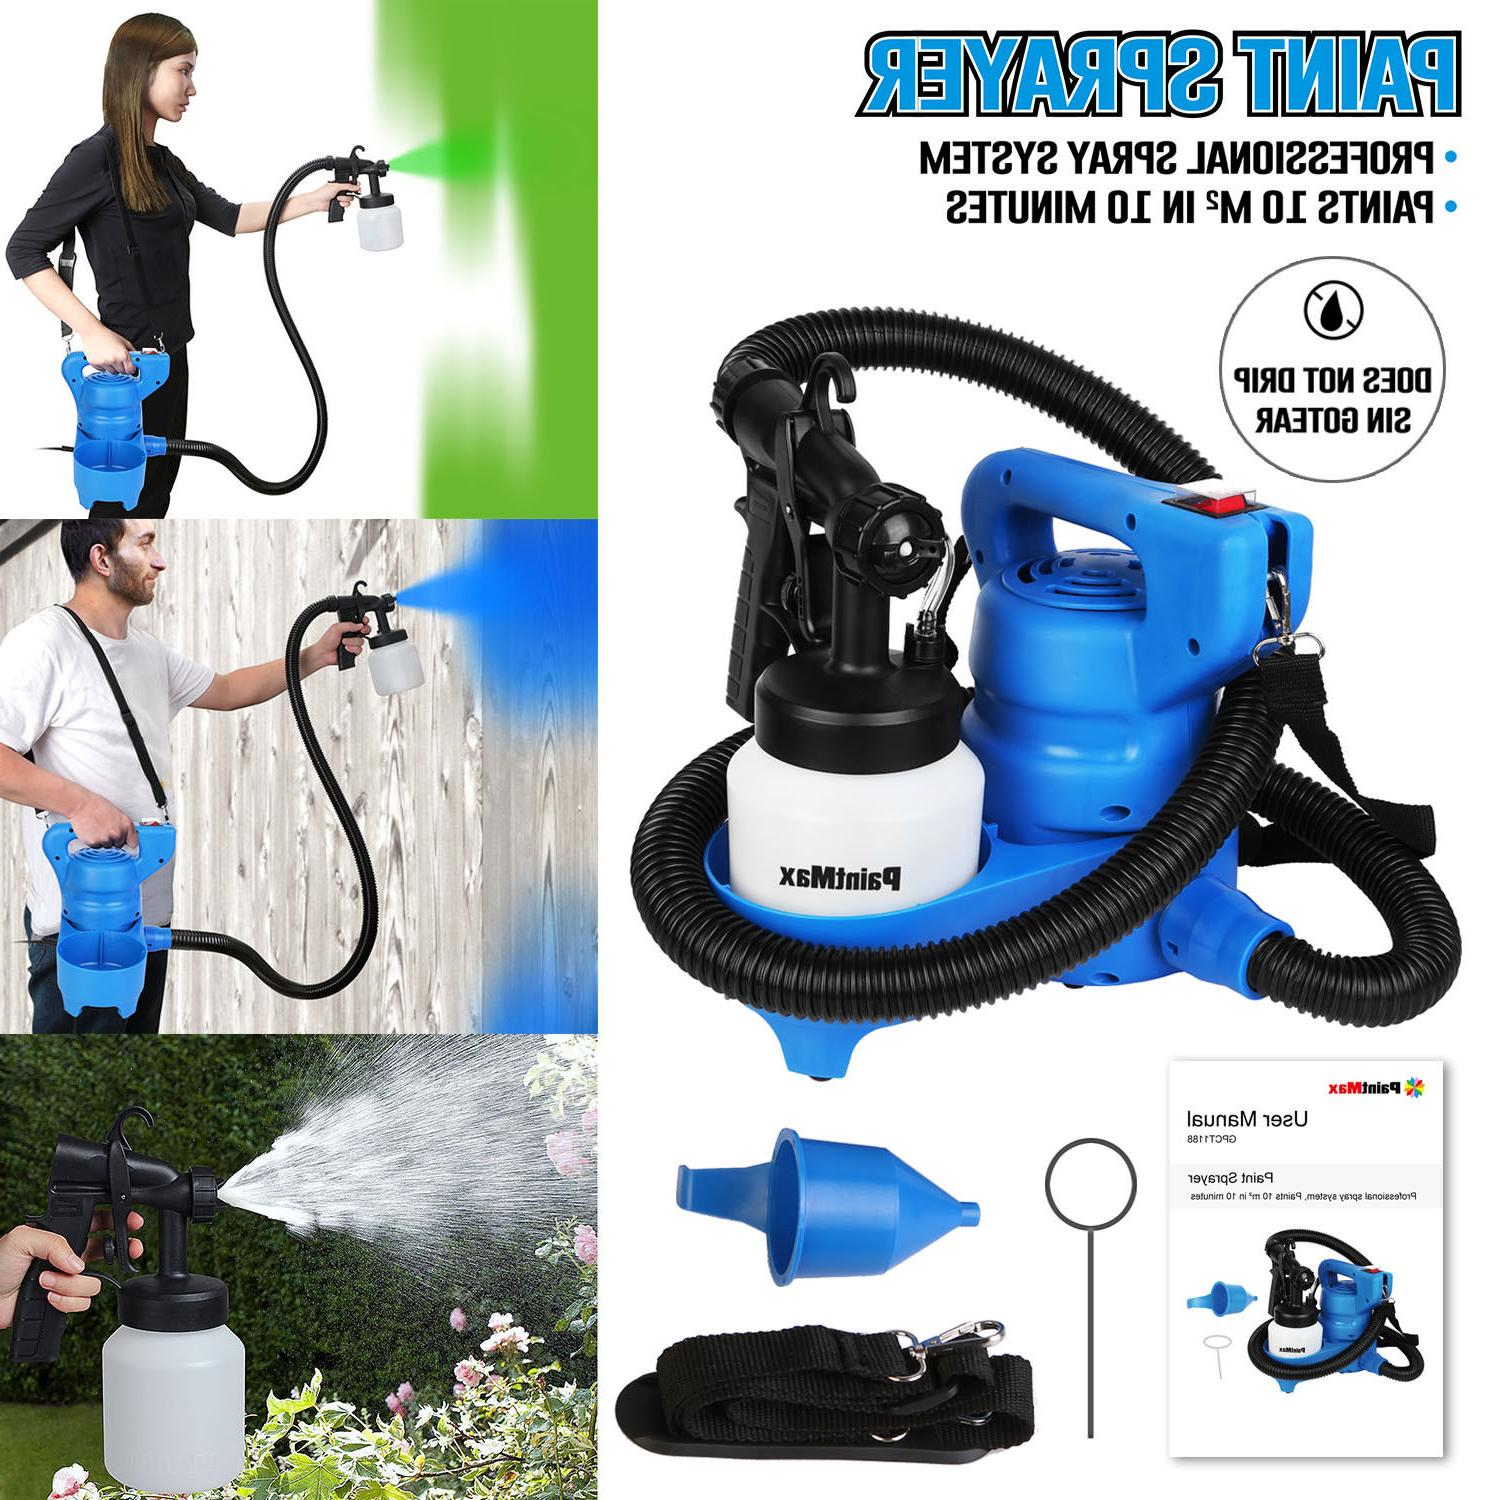 PaintMax Electric Paint Sprayer Gun. 3 Different Spray Patte